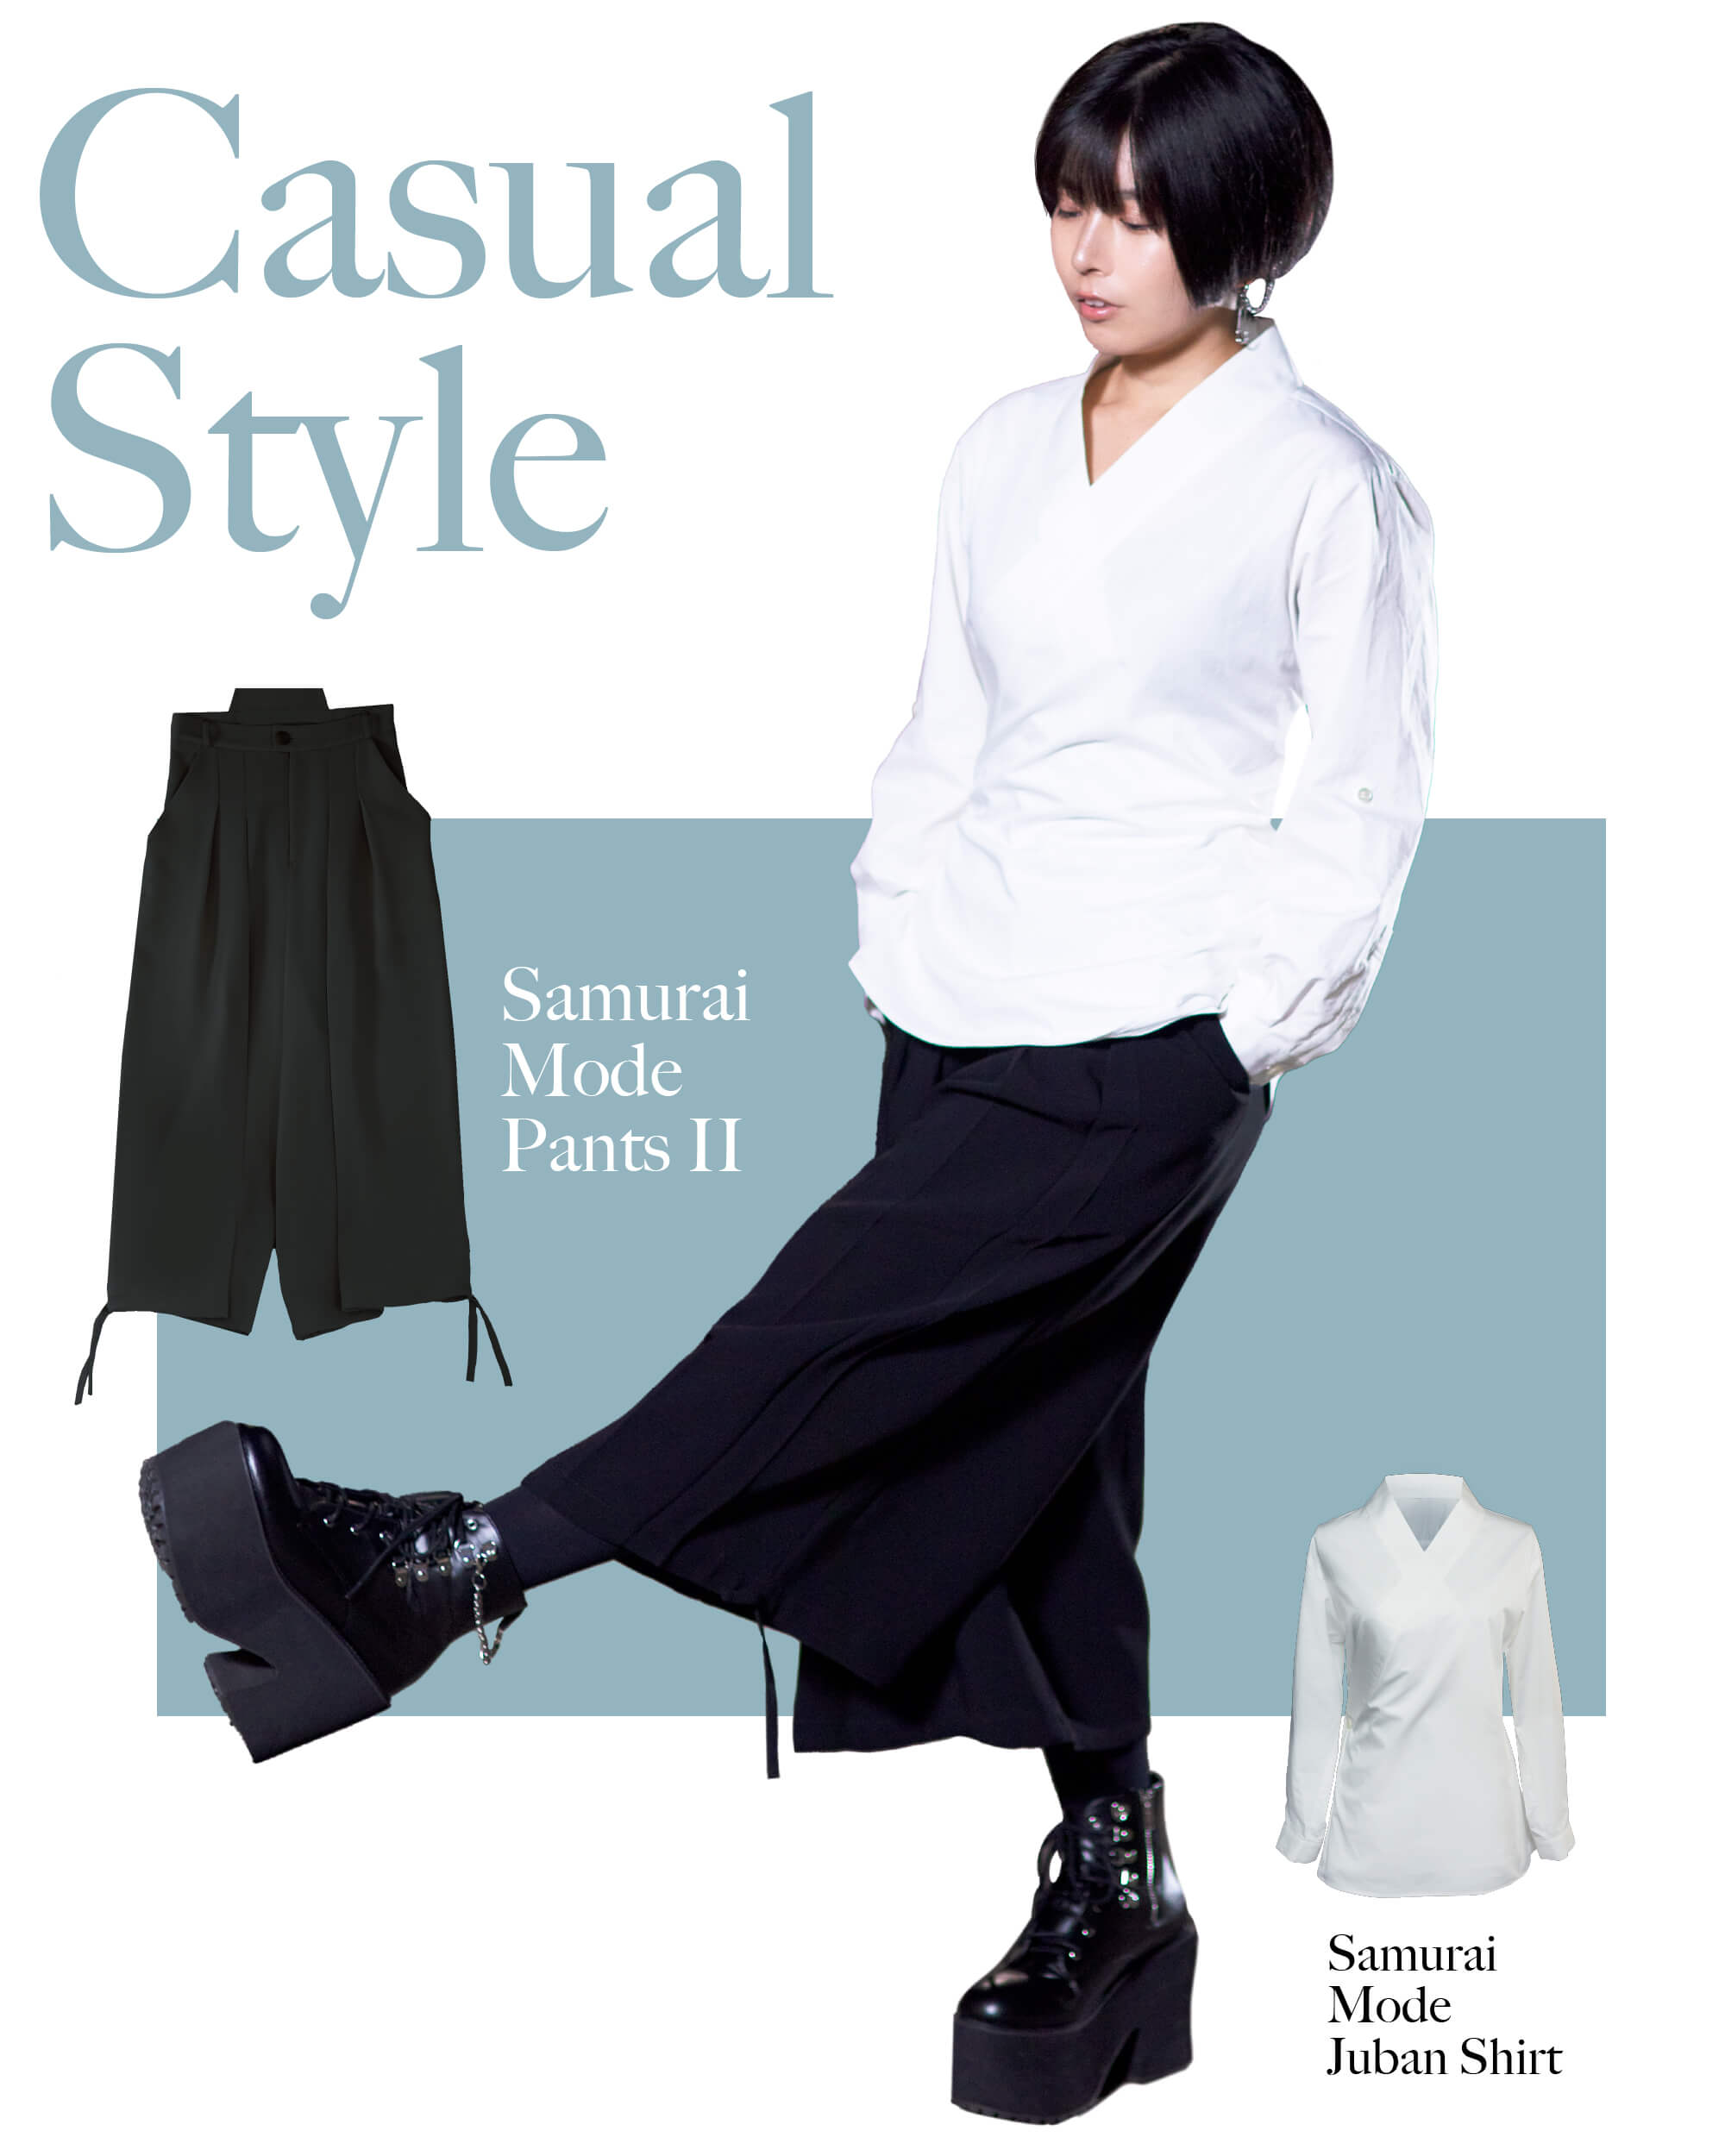 Samurai Mode Pants Casual Style